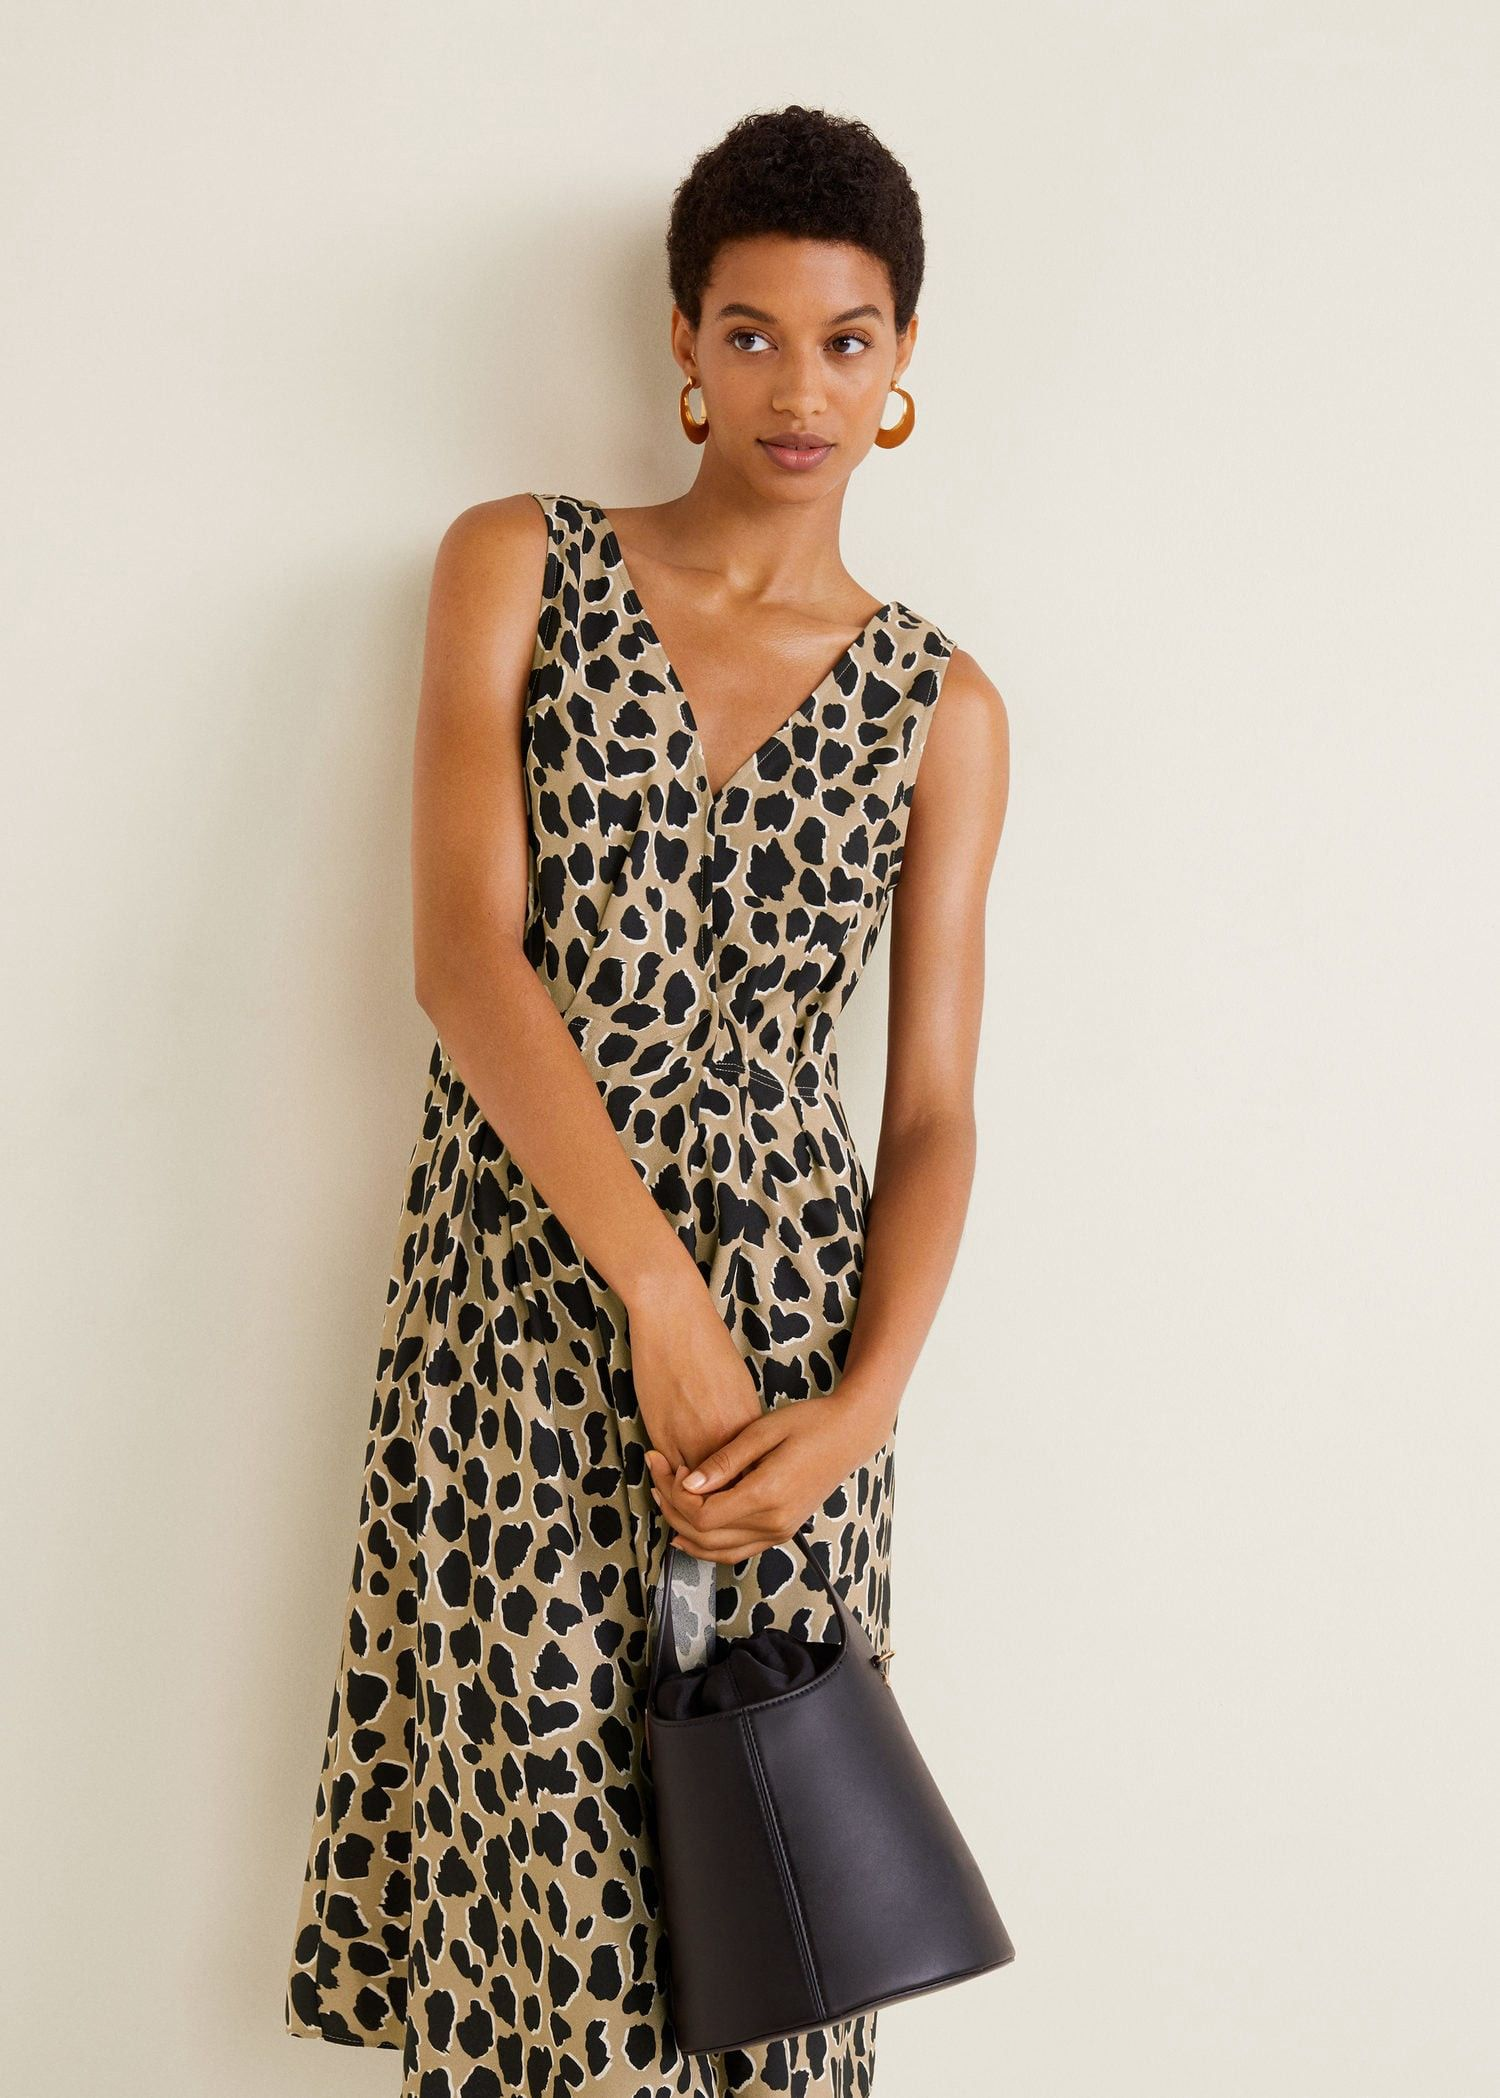 Mango Animal Print Dress - 2   Products   Animal print dresses ... 5e03a97d6141